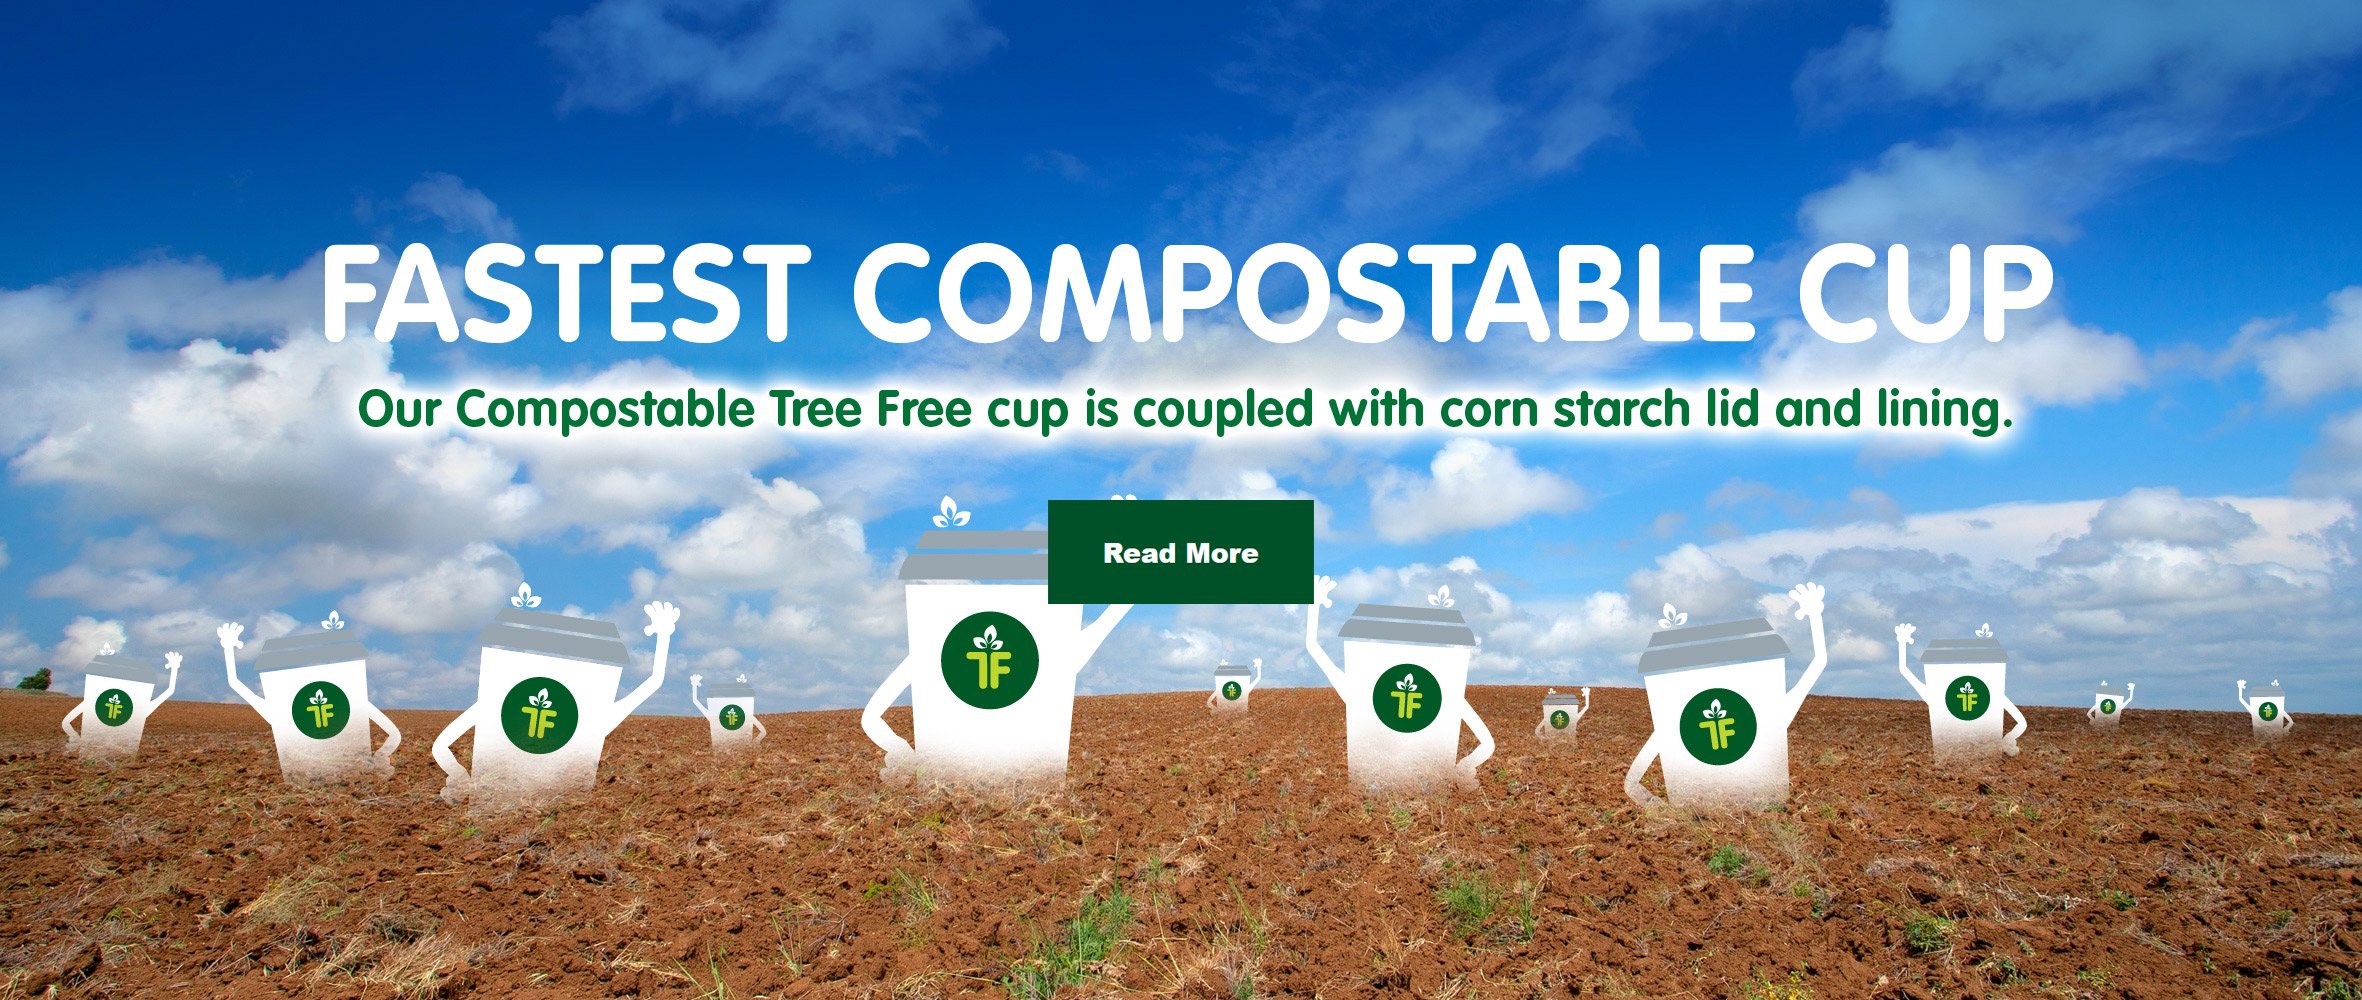 We placed 2 of our Bagasse cups and 2 paper cups in a home compost